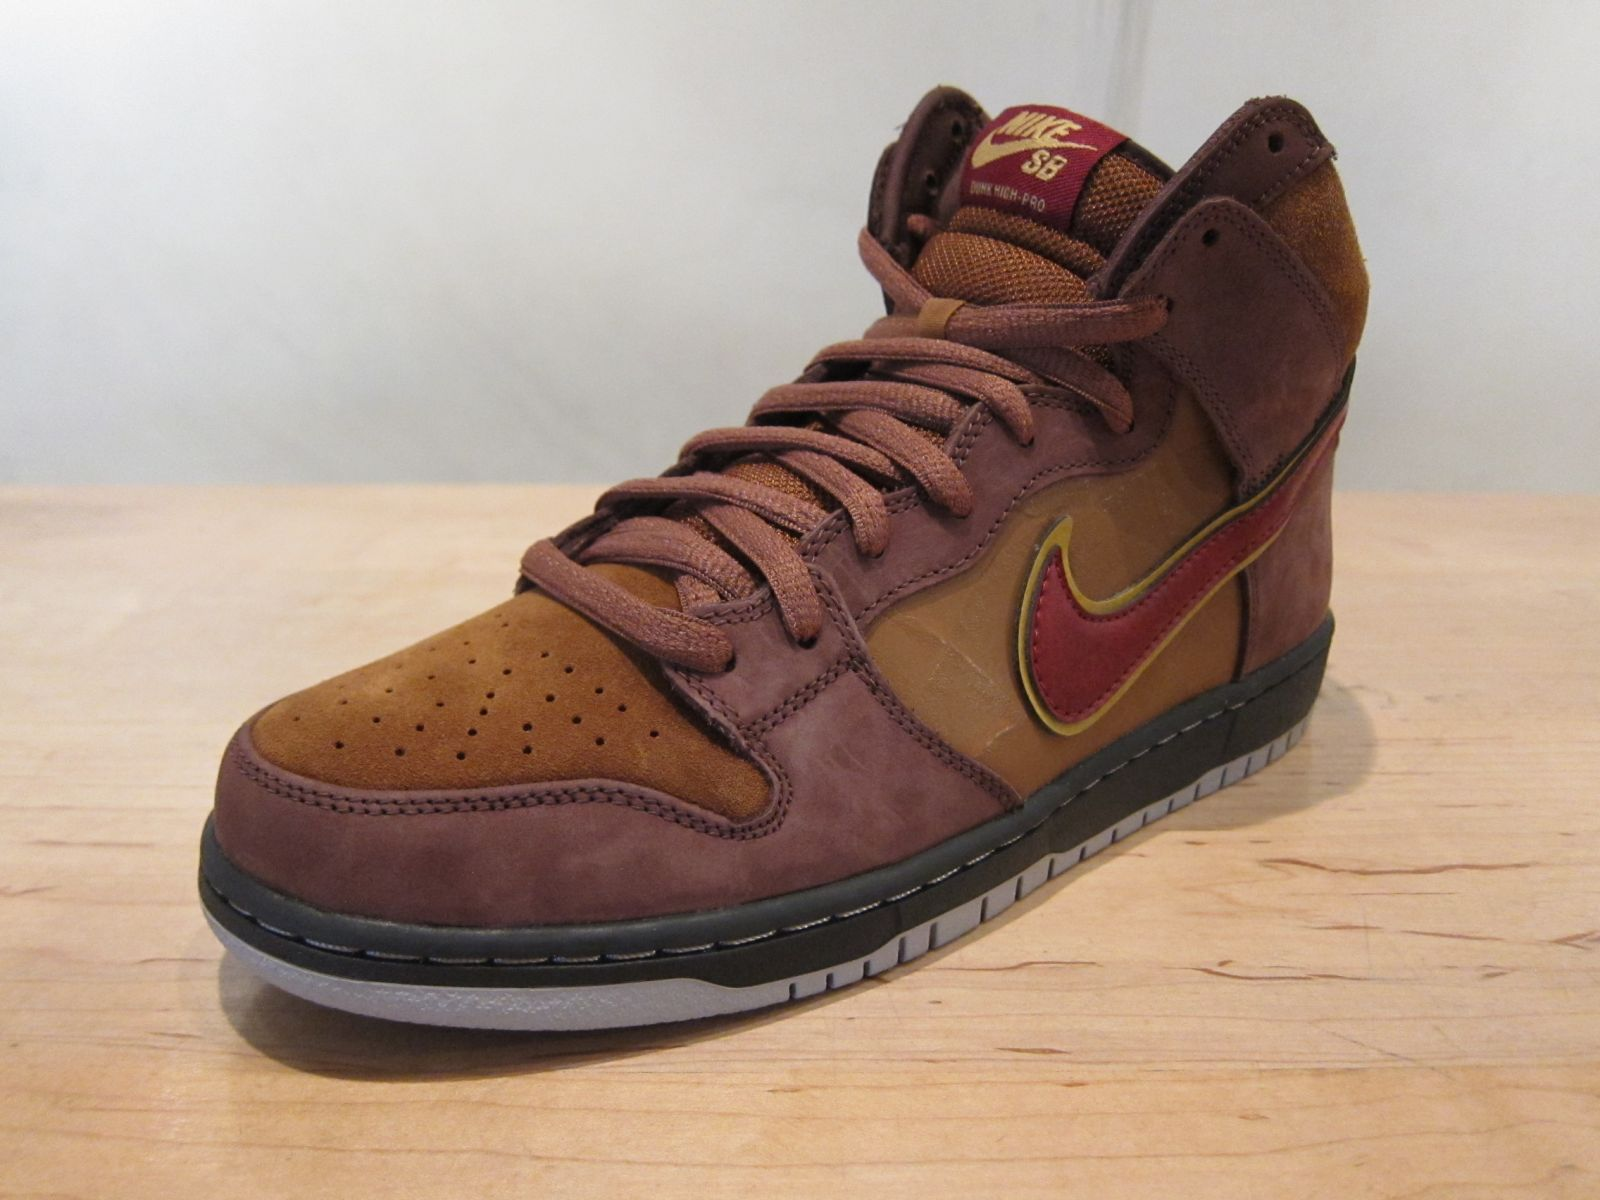 new products 7319c 92bcc SPoT x Nike SB Dunk High Todd Bratrud ...